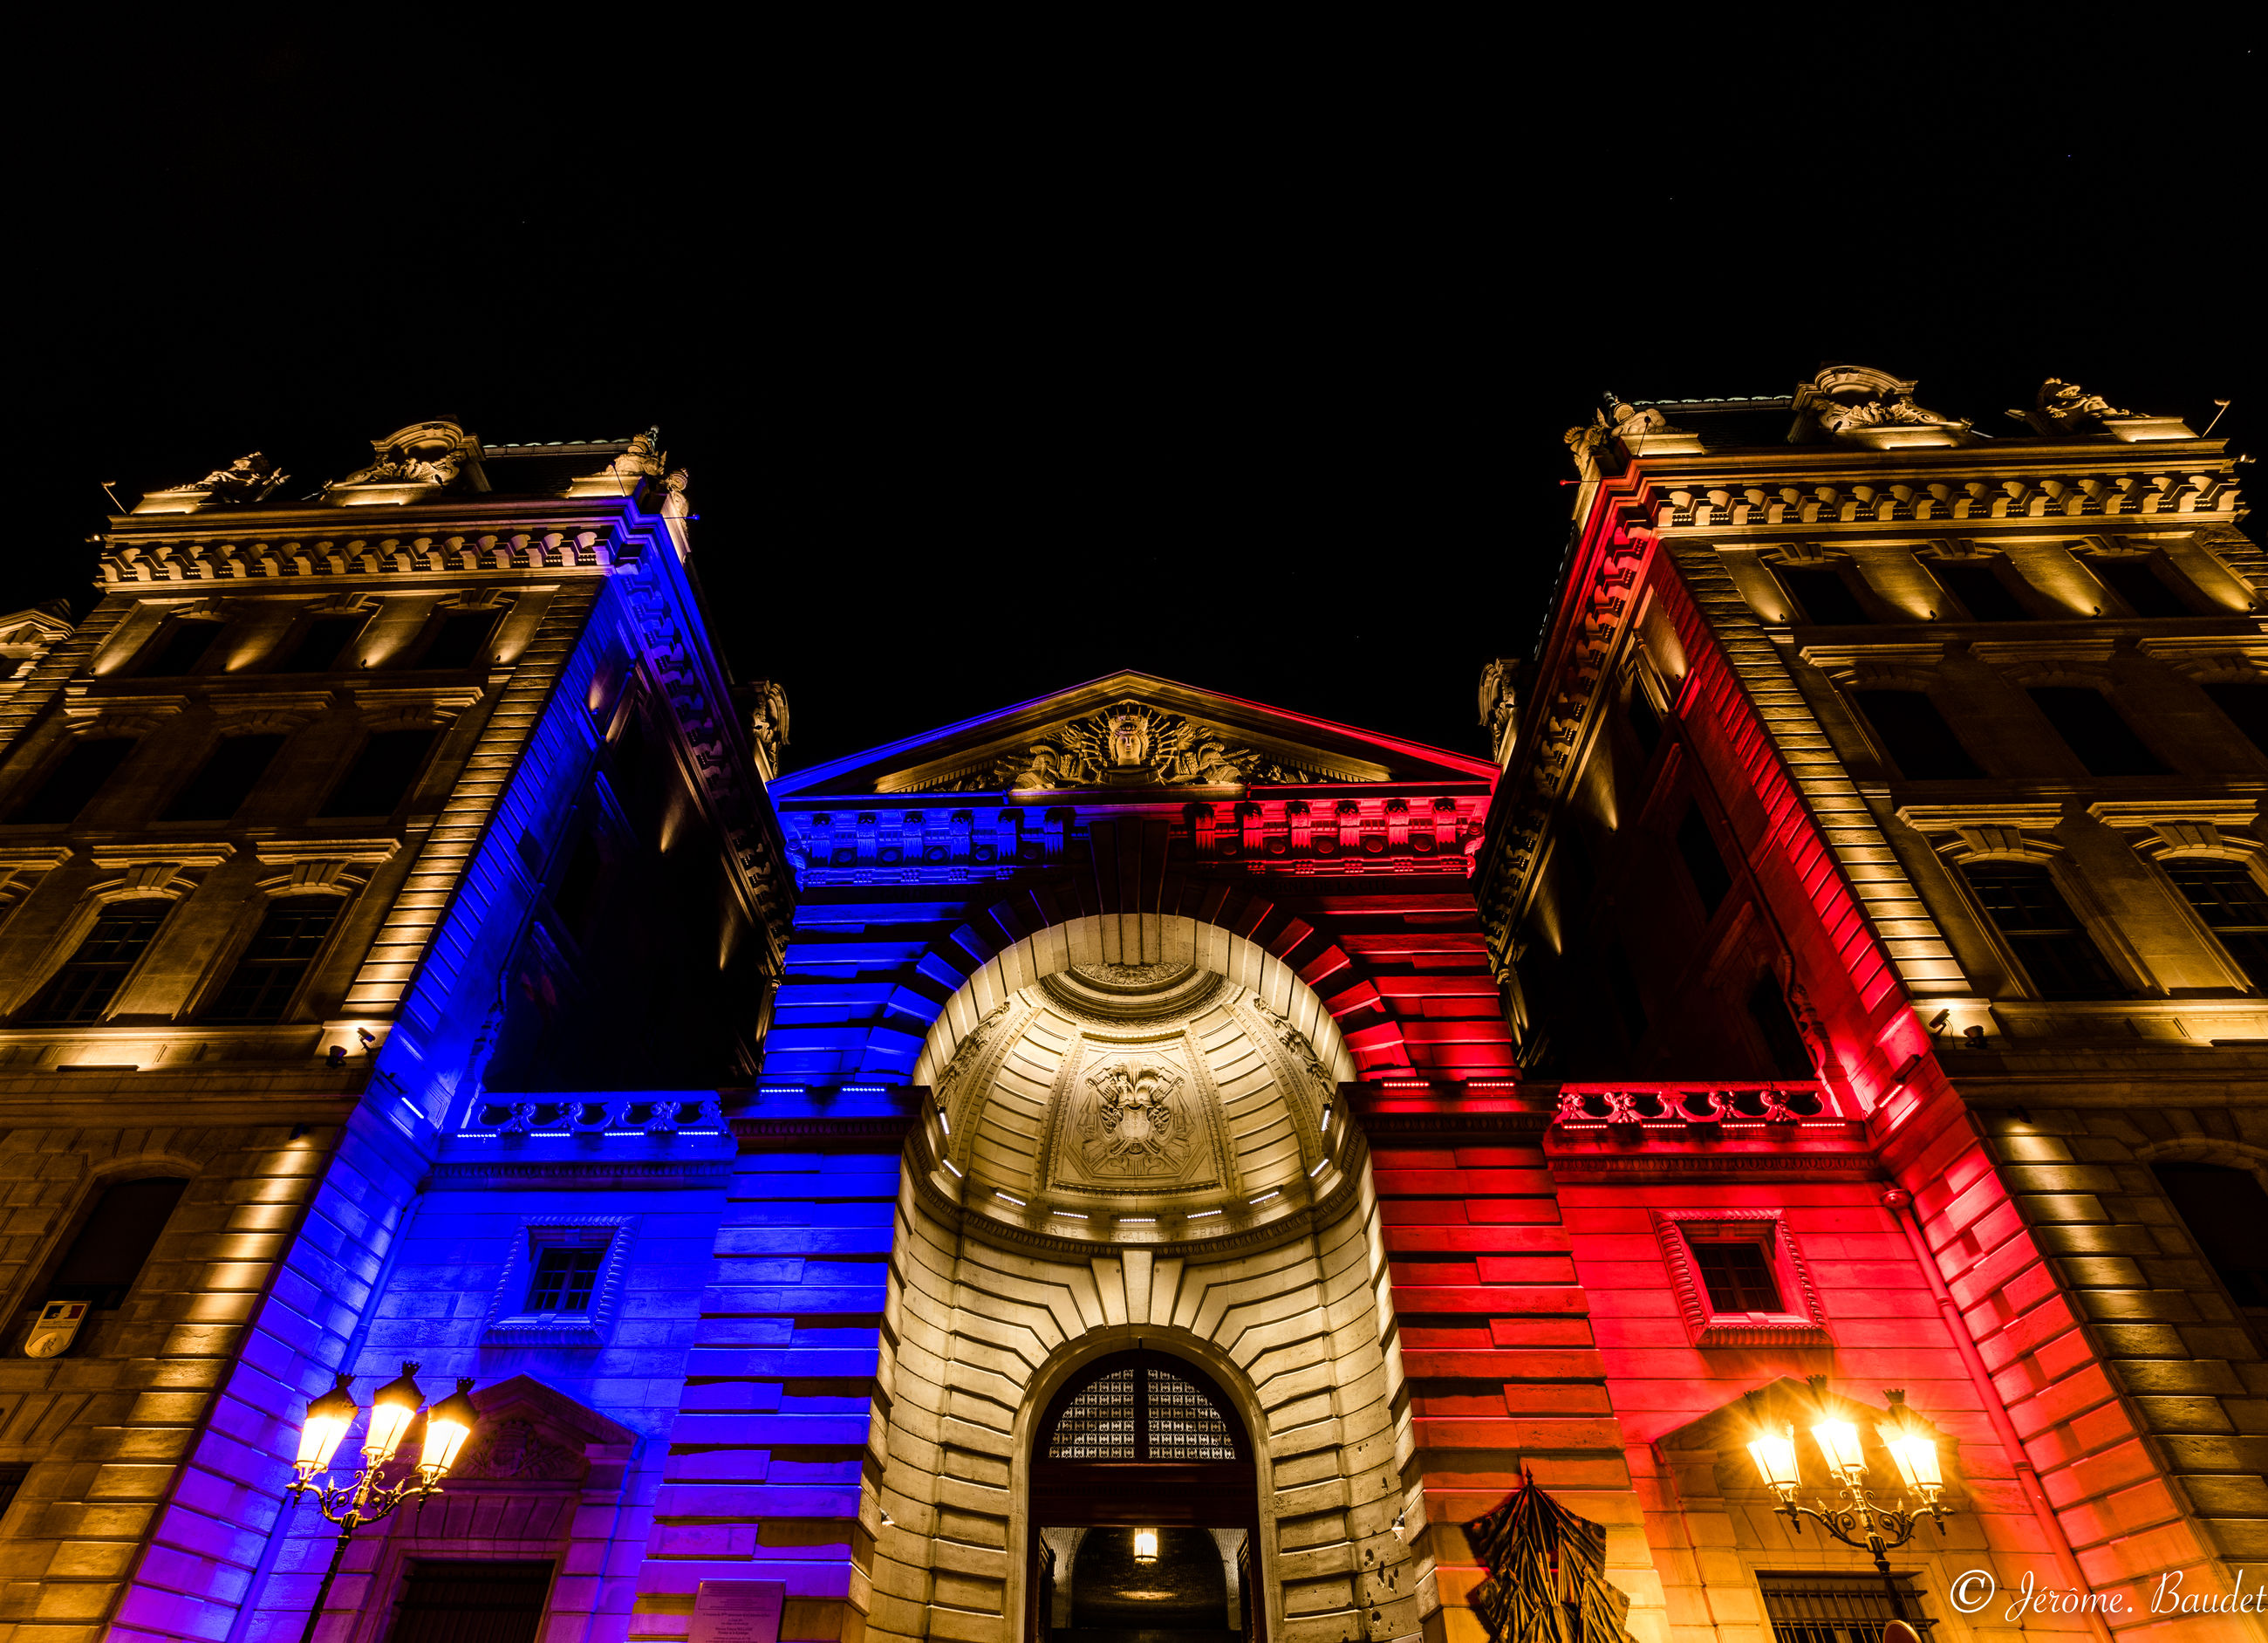 night, architecture, illuminated, building exterior, built structure, low angle view, travel destinations, history, building, the past, sky, no people, travel, tourism, city, nature, outdoors, lighting equipment, facade, government, ornate, luxury